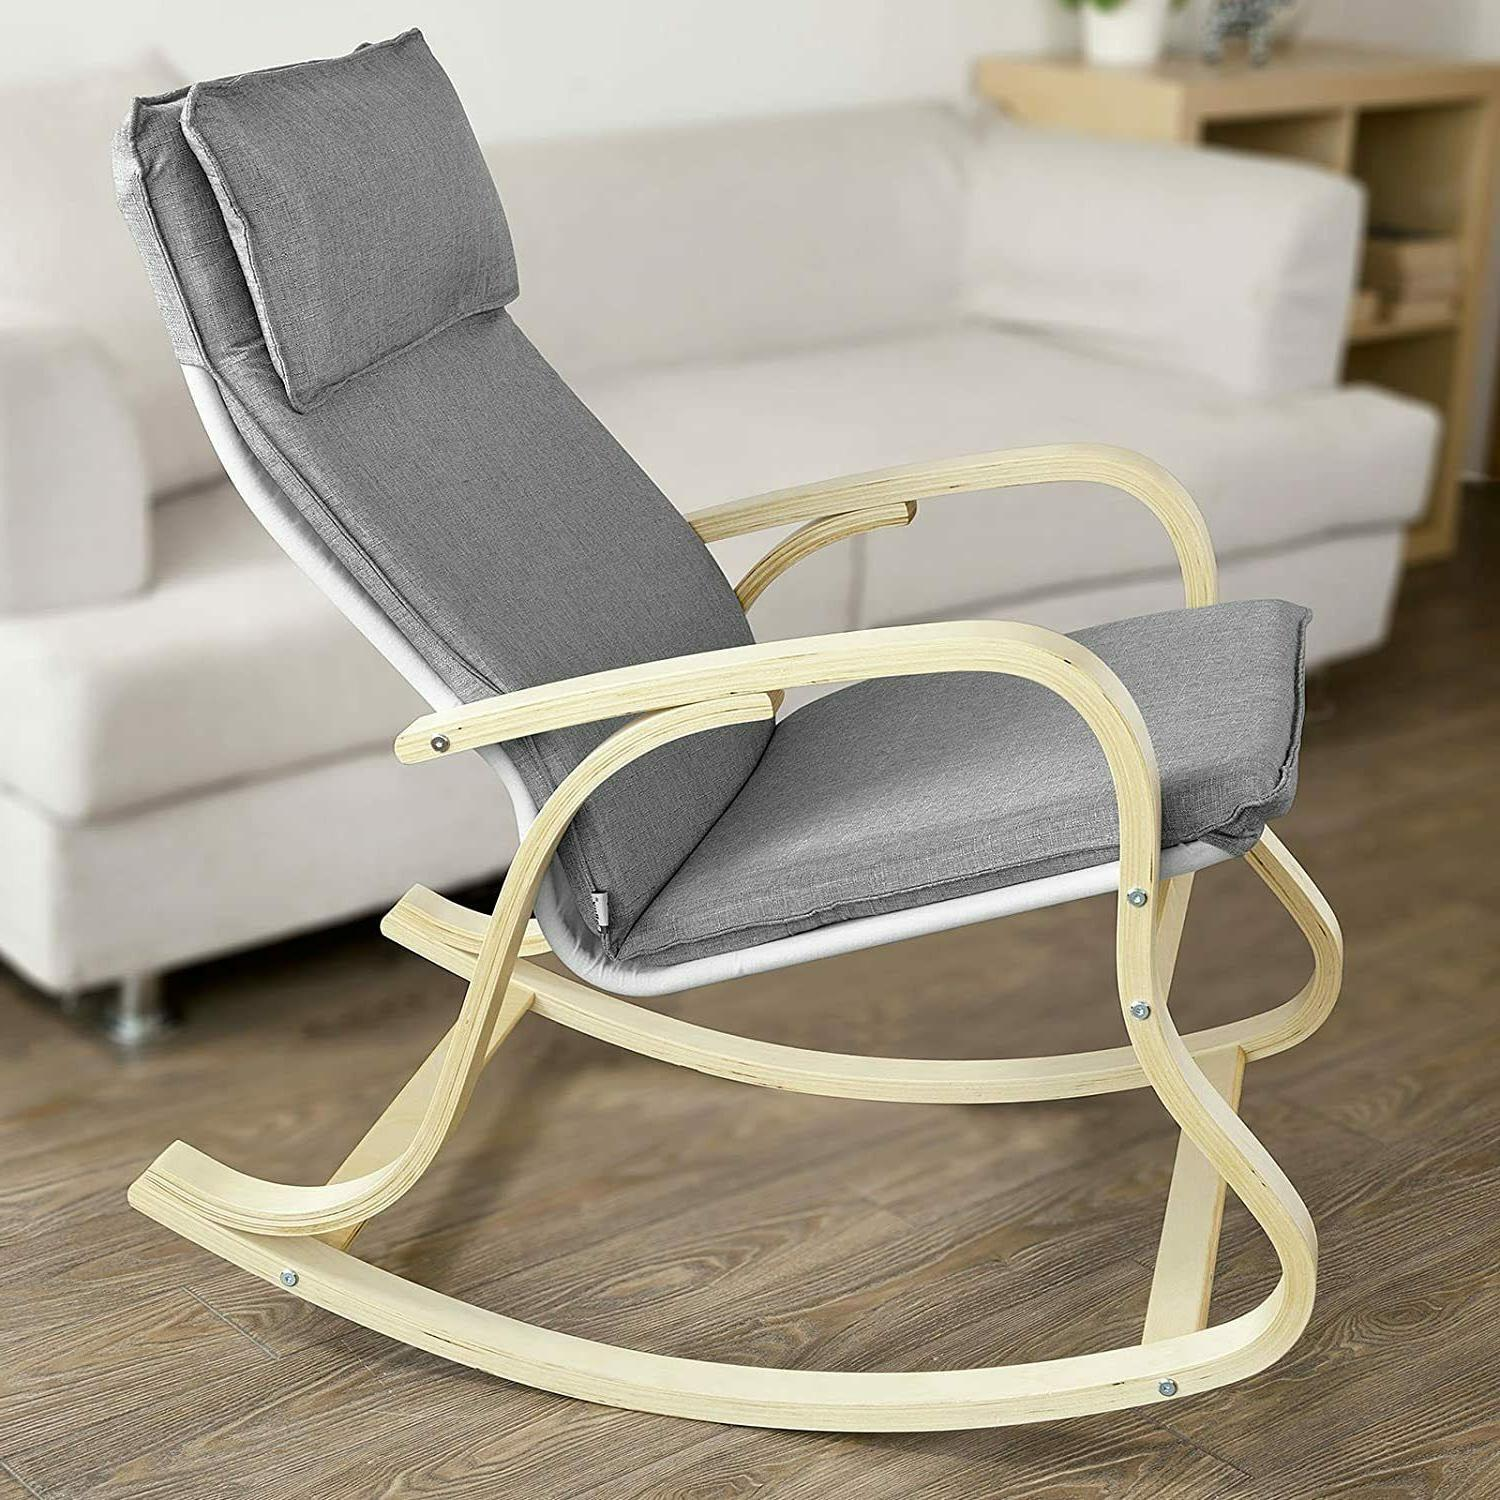 Wood Chair Nursery Baby Rocker Seat Rest